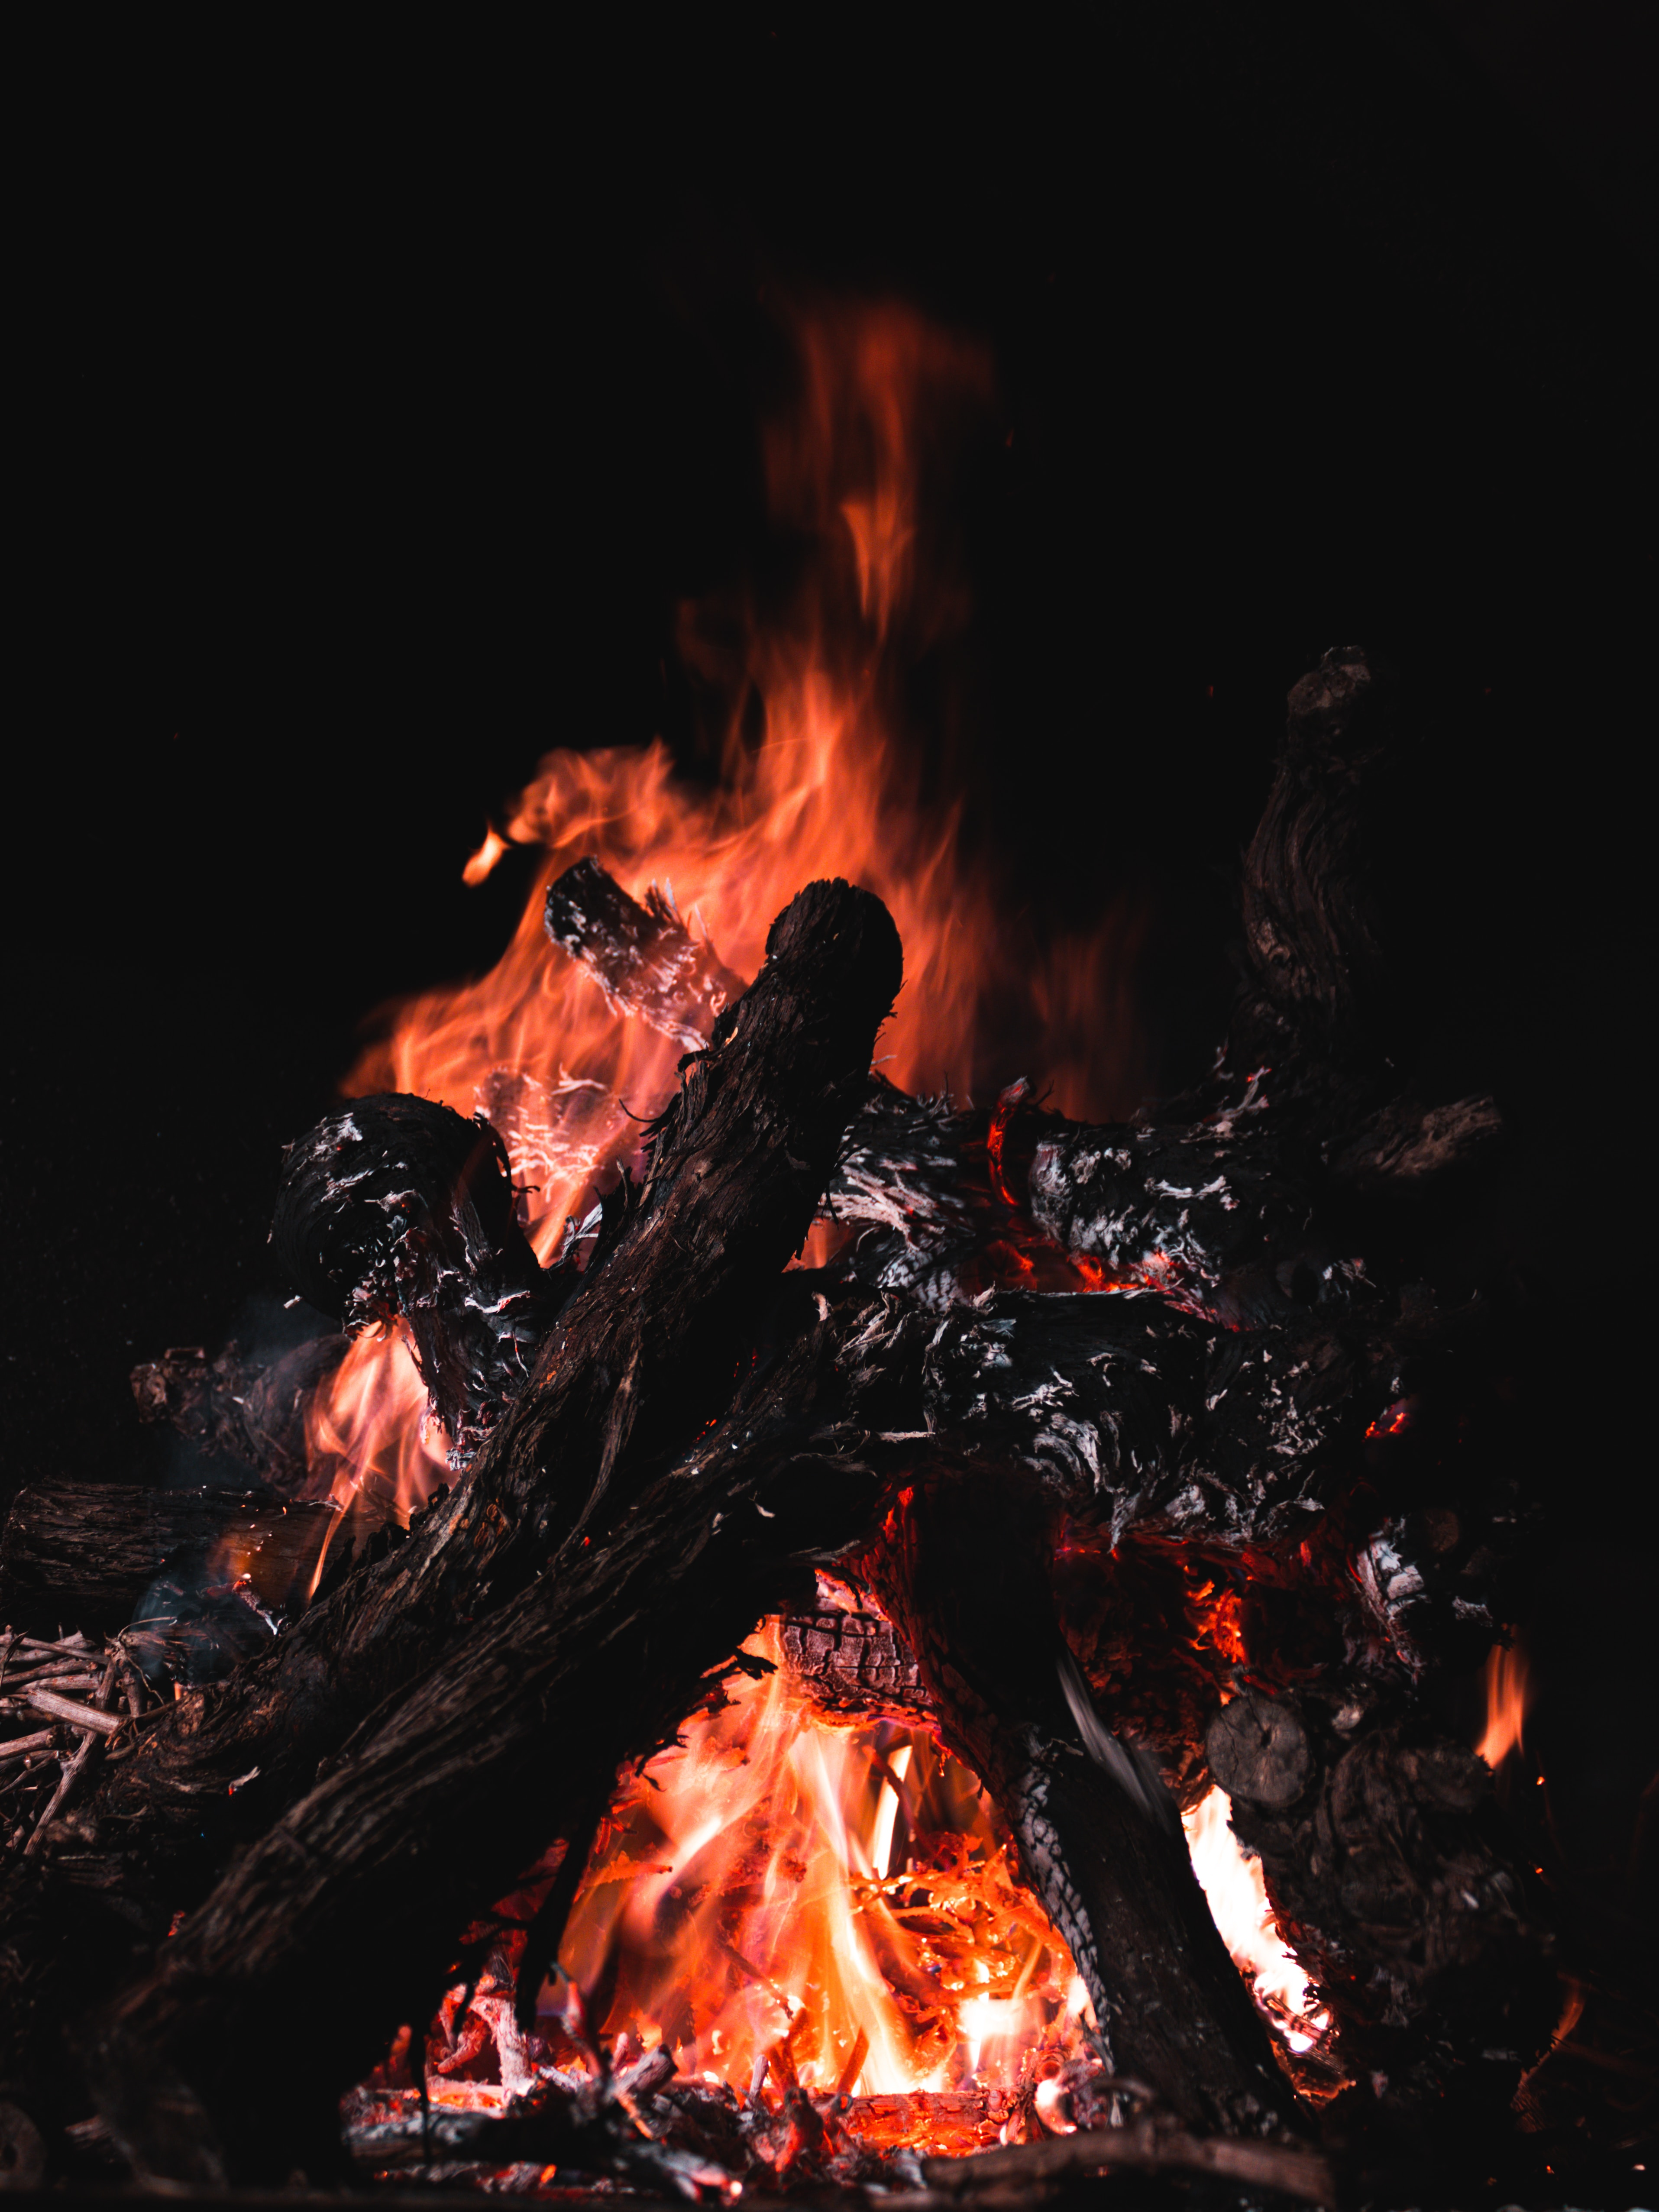 129791 Screensavers and Wallpapers Firewood for phone. Download Fire, Bonfire, Coals, Dark, Firewood pictures for free